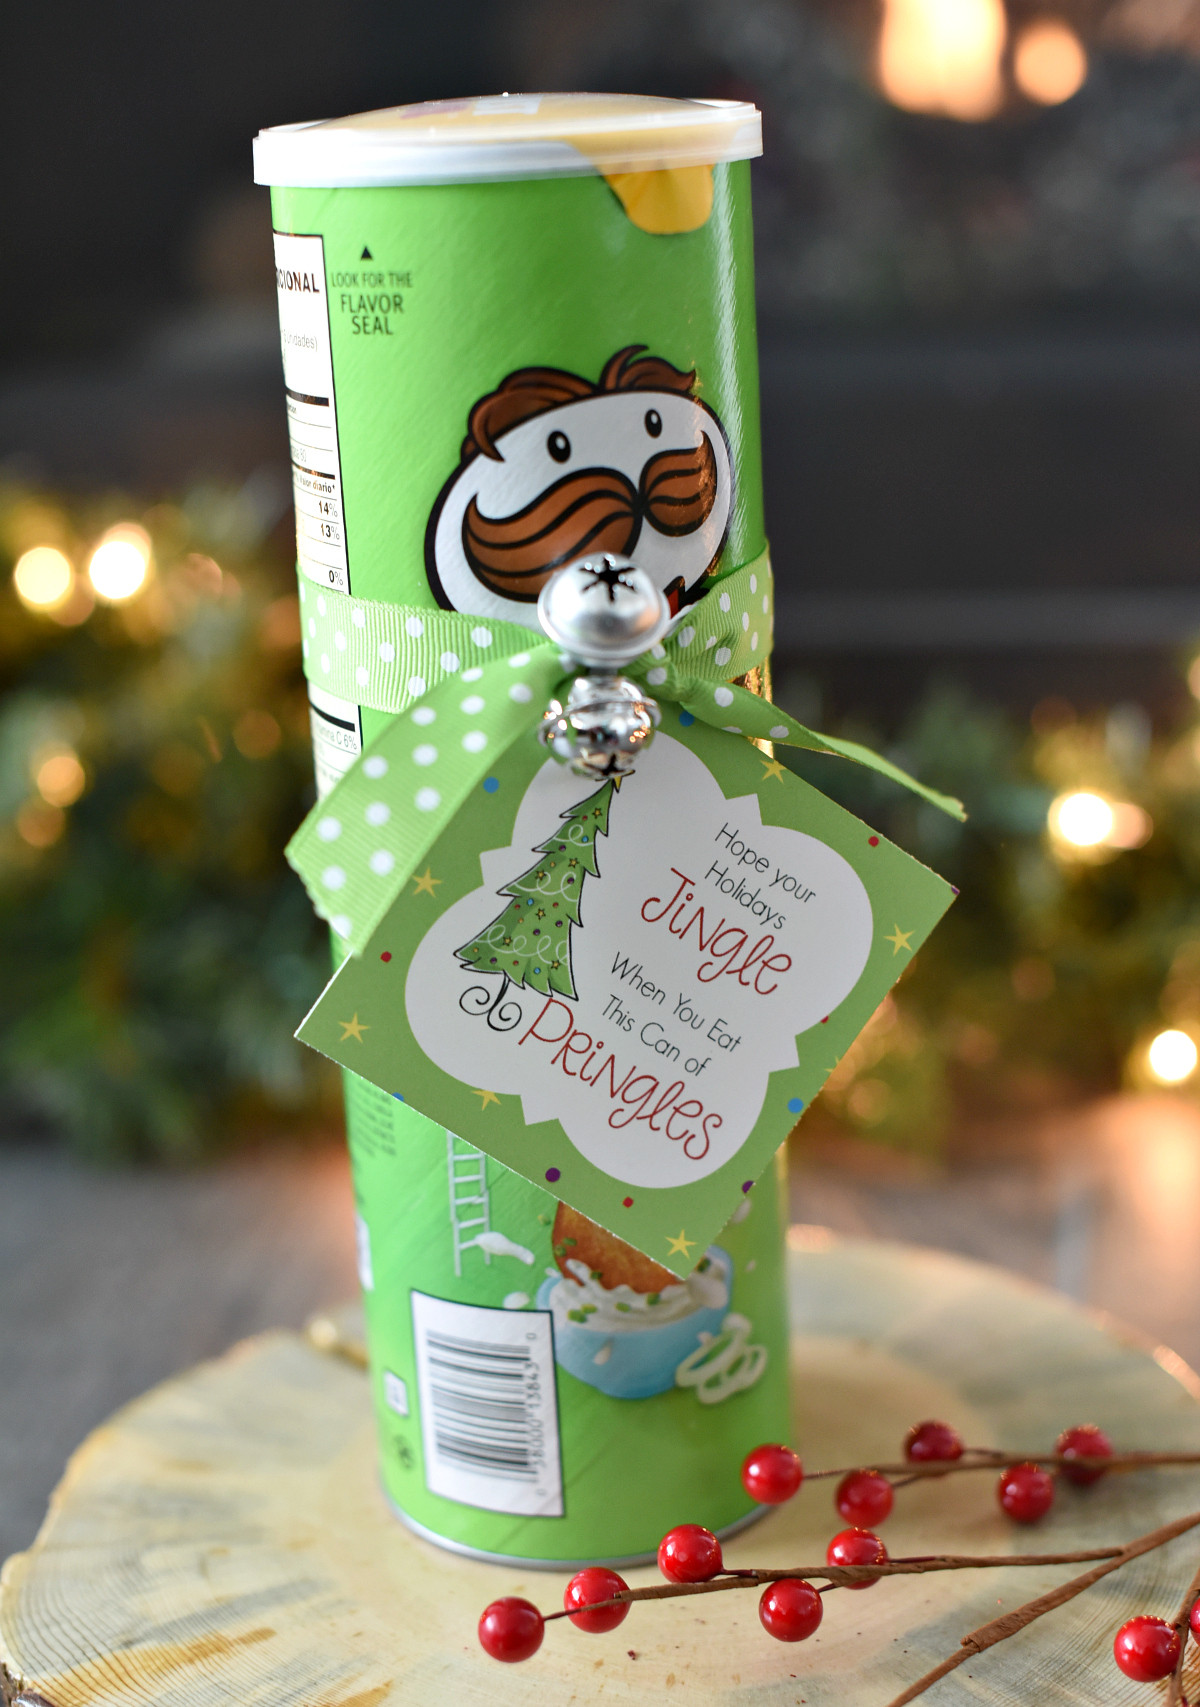 Best ideas about Silly Gift Ideas . Save or Pin Funny Christmas Gift Idea with Pringles – Fun Squared Now.